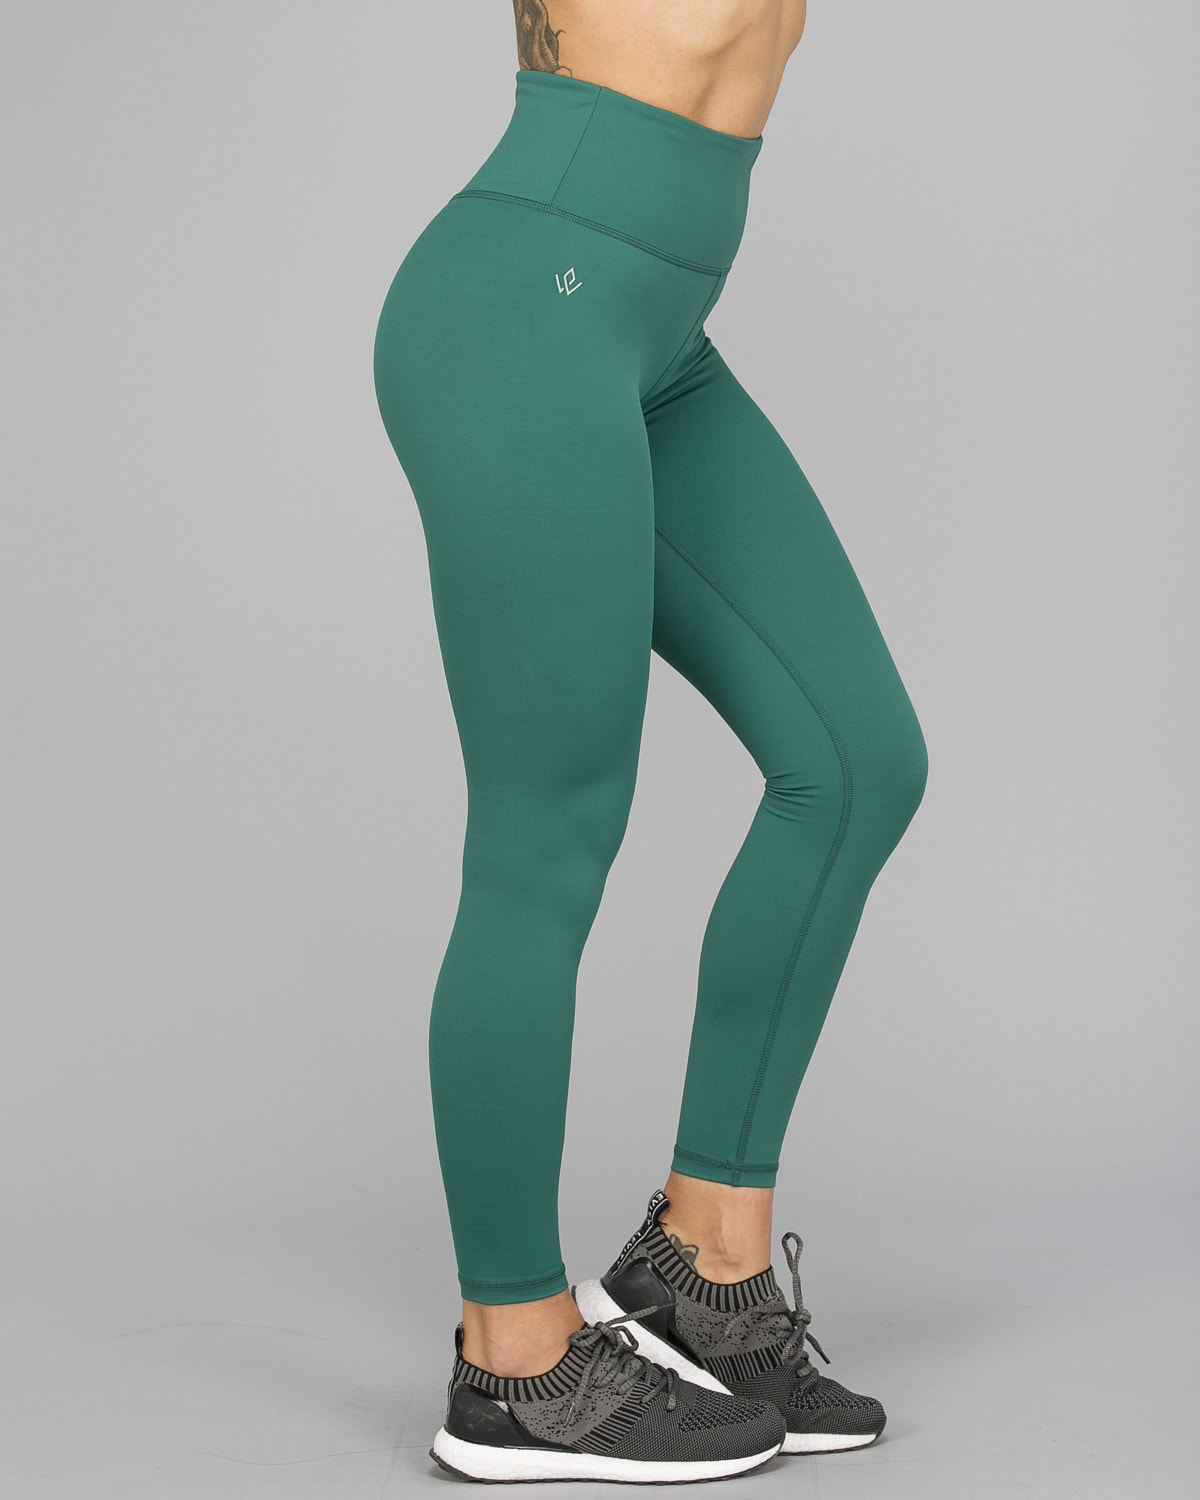 Workout Empire – With Confidence Shape Leggings – Emerald Green9